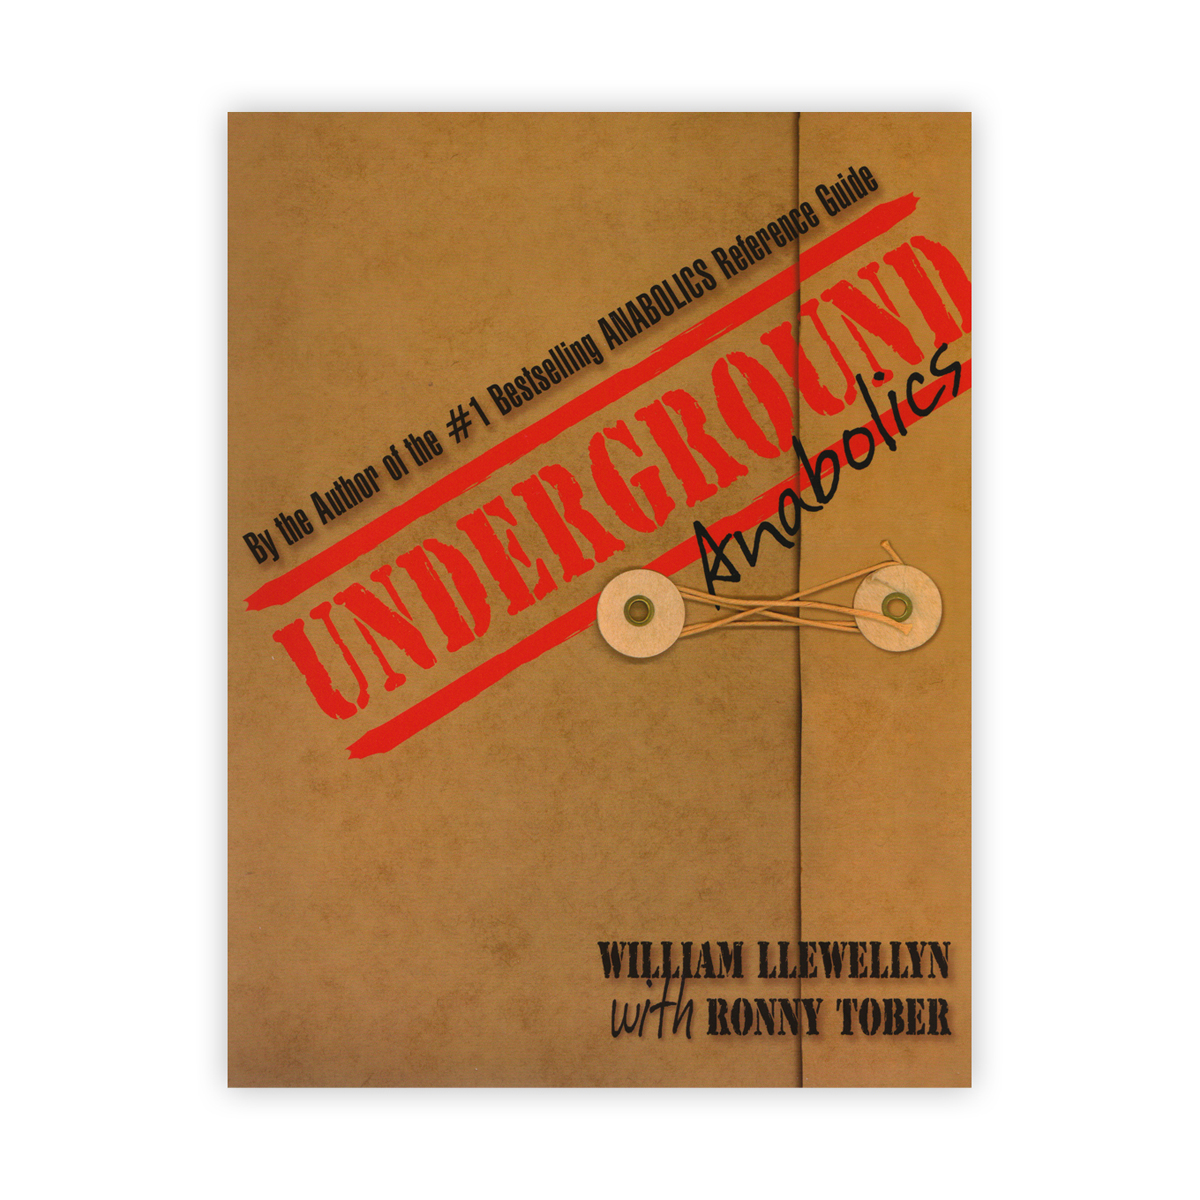 Underground Anabolics by William Llewellyn